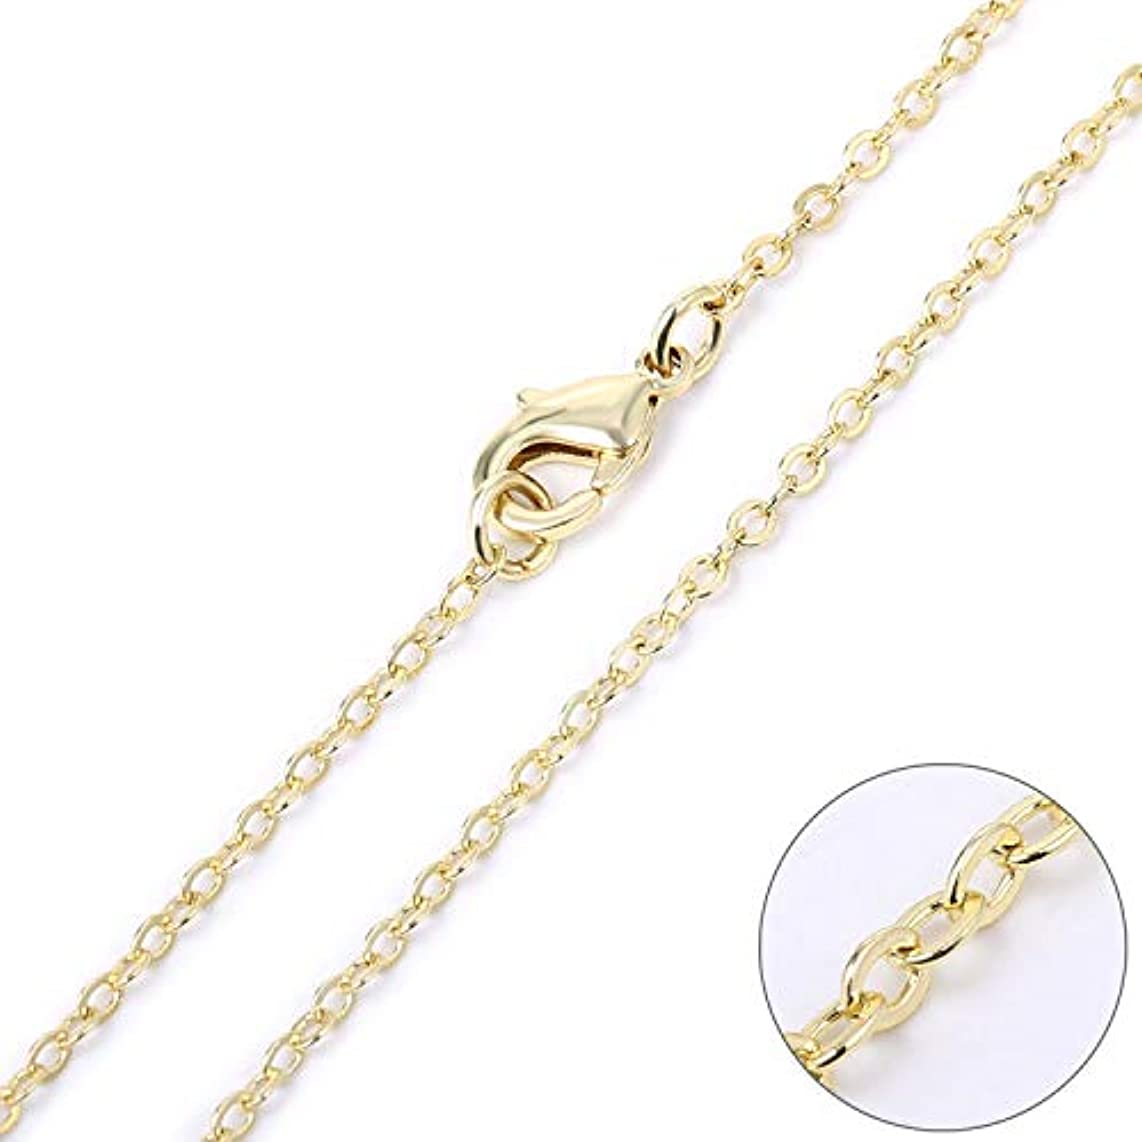 Wholesale 12 PCS Gold Plated Brass Flat Cable Chain Finished Necklace Chains Bulk for Jewelry Making (18 Inch(1.5MM))